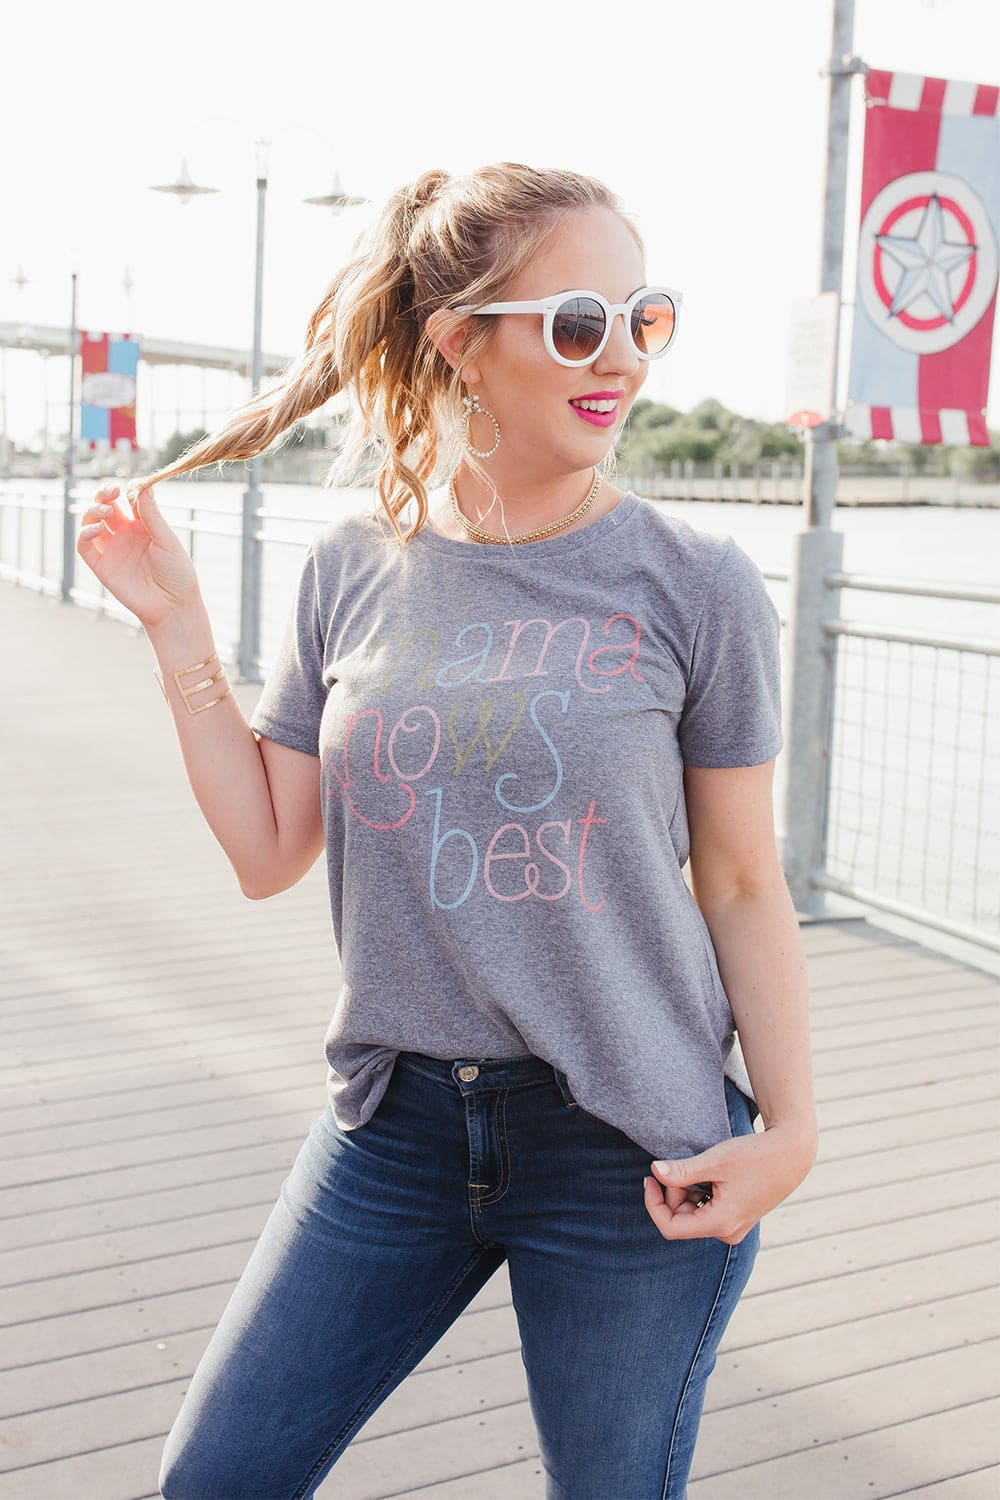 Houston lifestyle blogger Meg O. on the Go styles a graphic tshirt that says Mama Knows Best